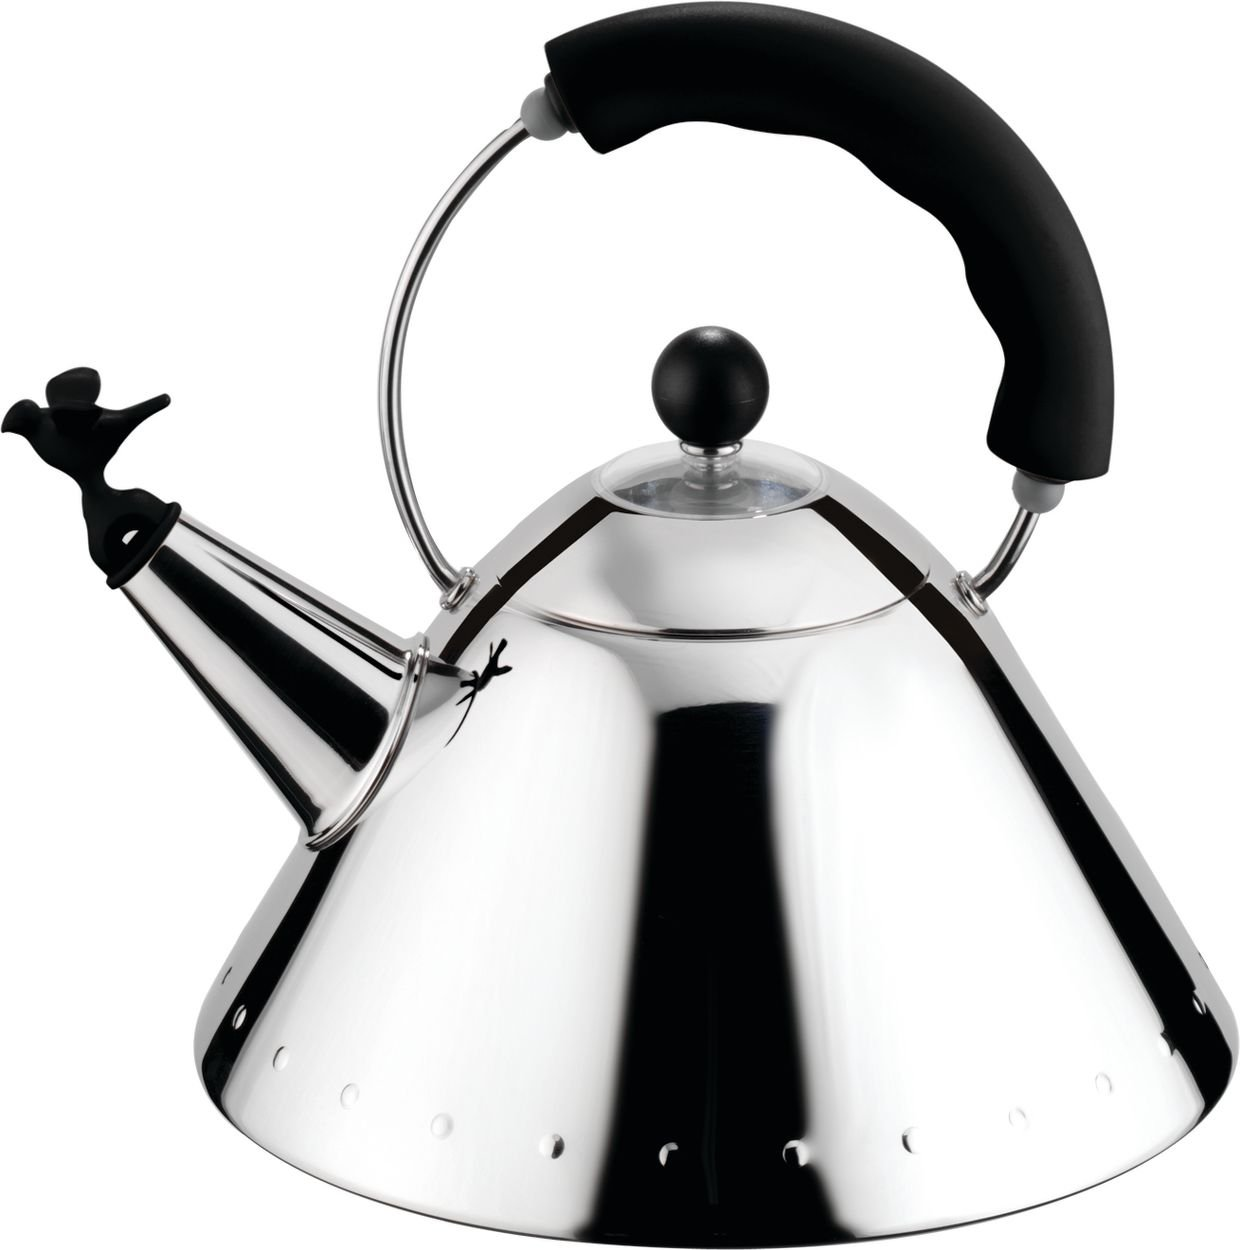 amazoncom alessi michael graves kettle with bird shaped whistle  - amazoncom alessi michael graves kettle with bird shaped whistle blacktea kettle michael graves kitchen  dining